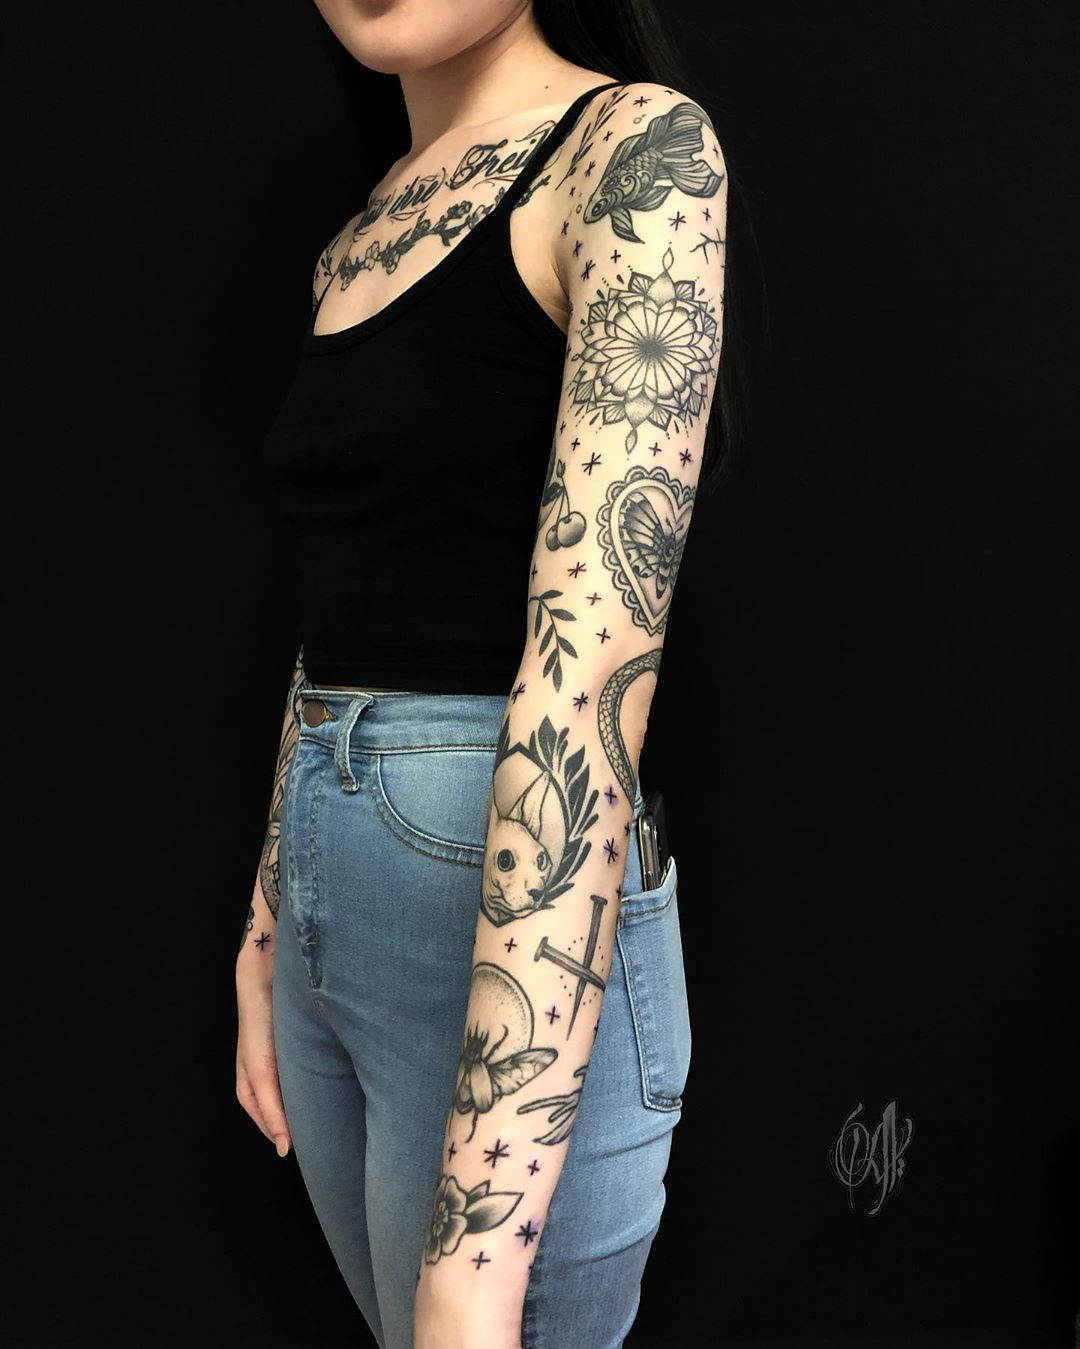 Blackwork sleeve tattoo by Alveno